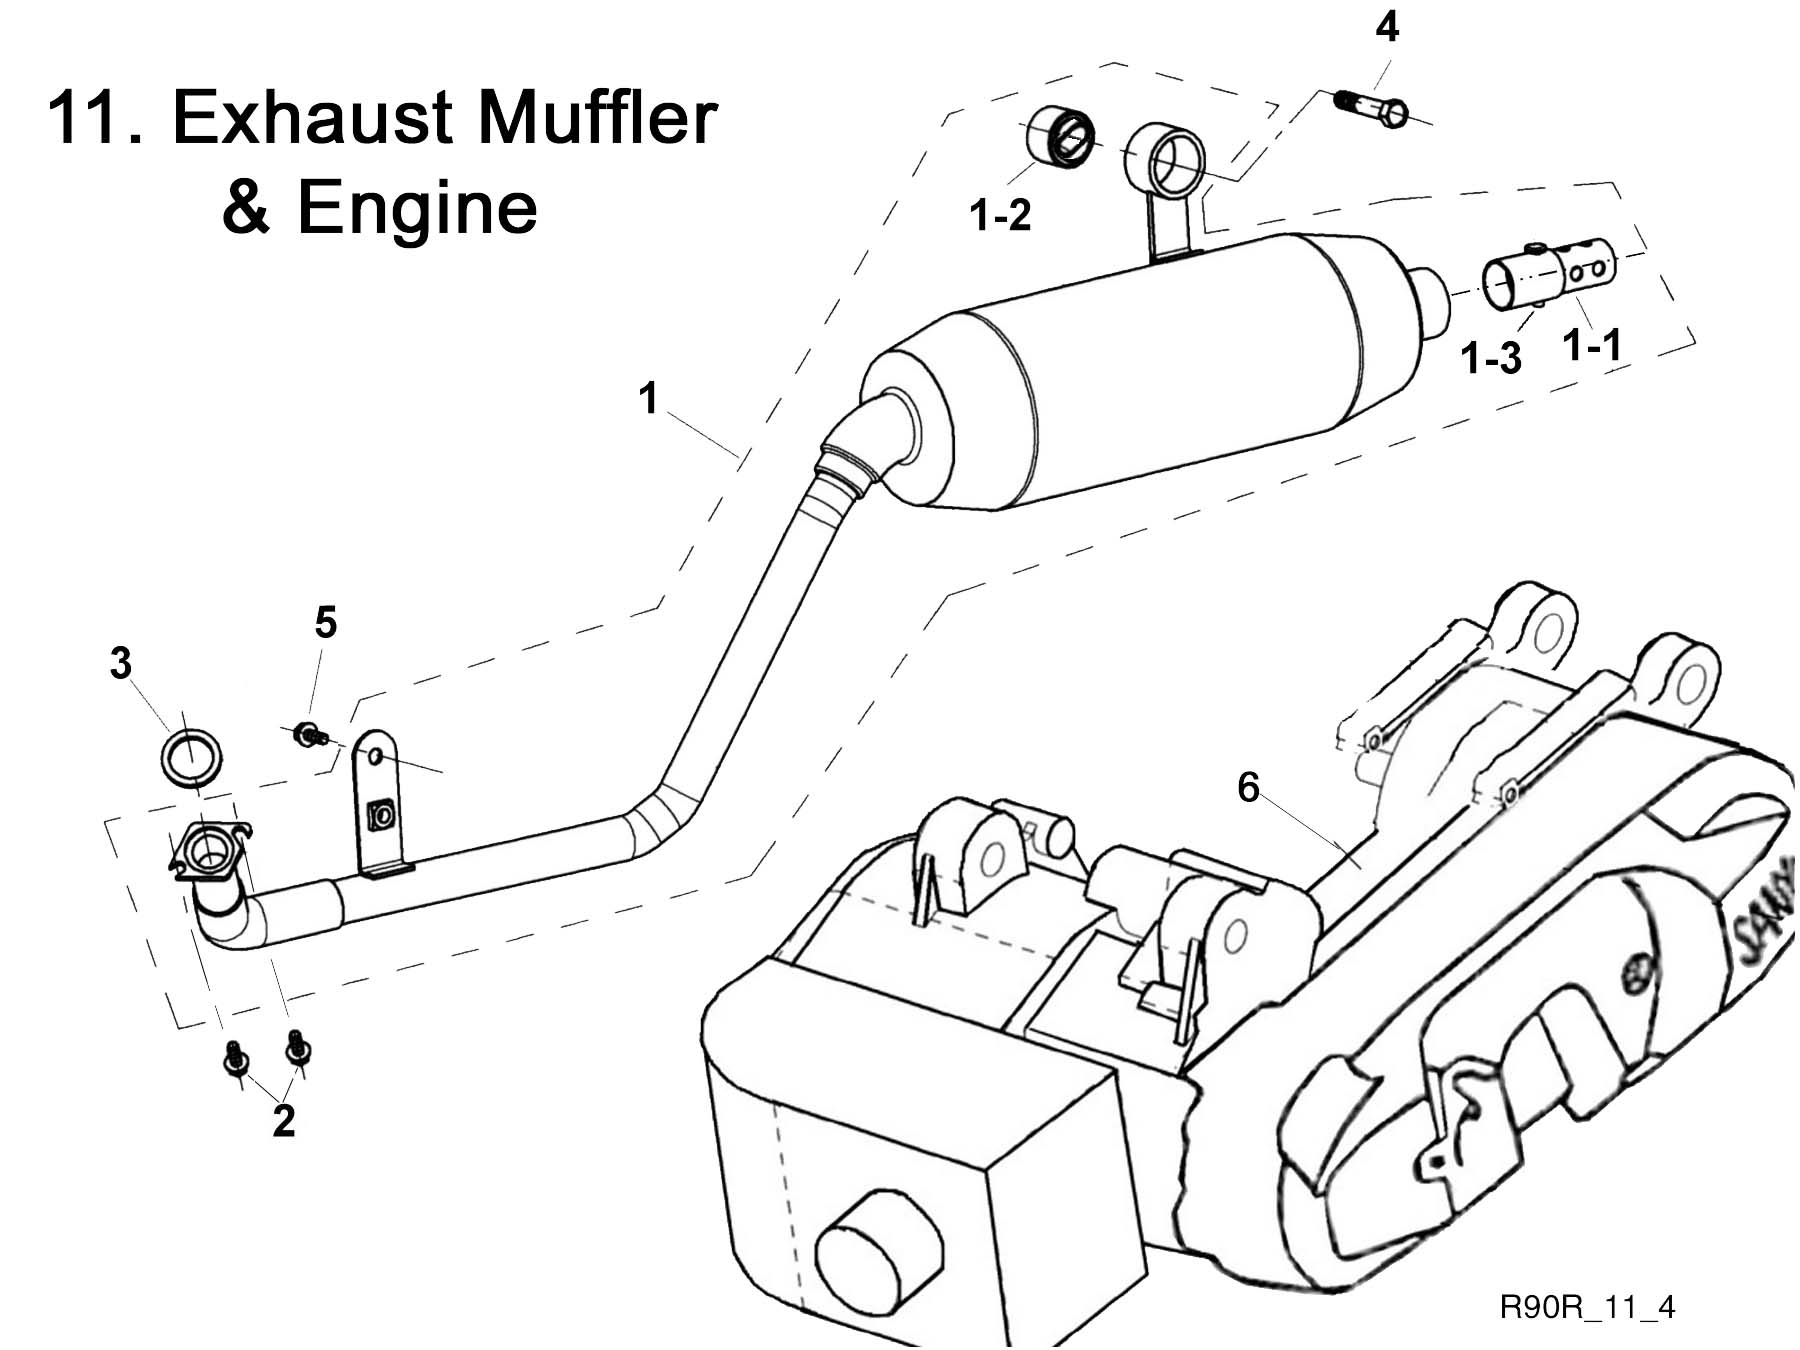 Exhaust System and Engine